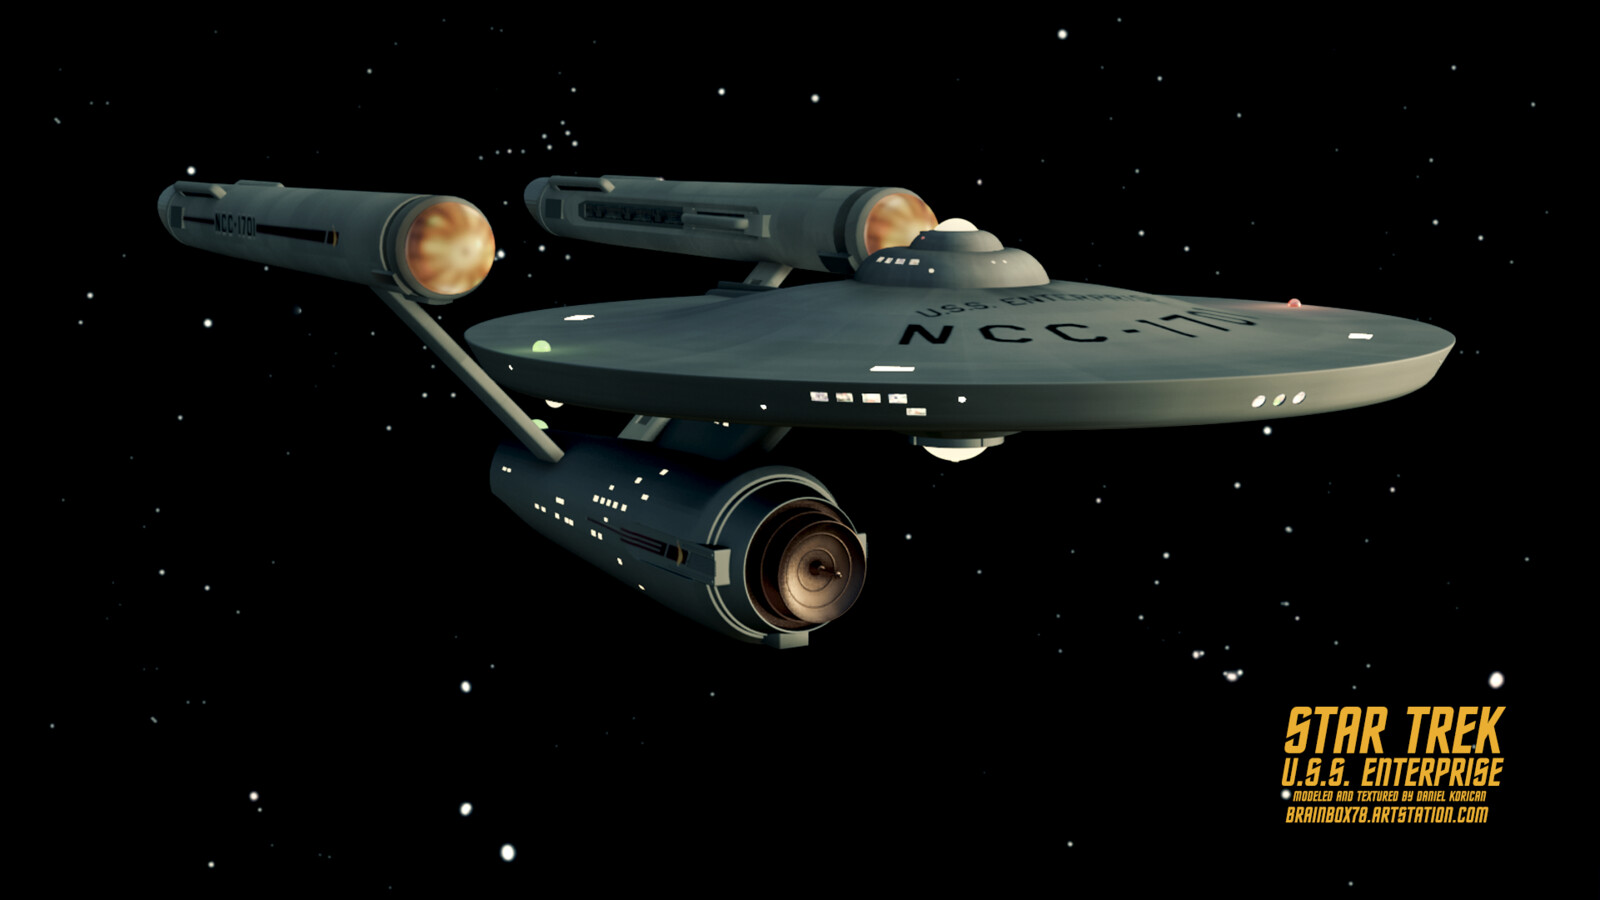 Star Trek The Original Series - U.S.S. ENTERPRISE